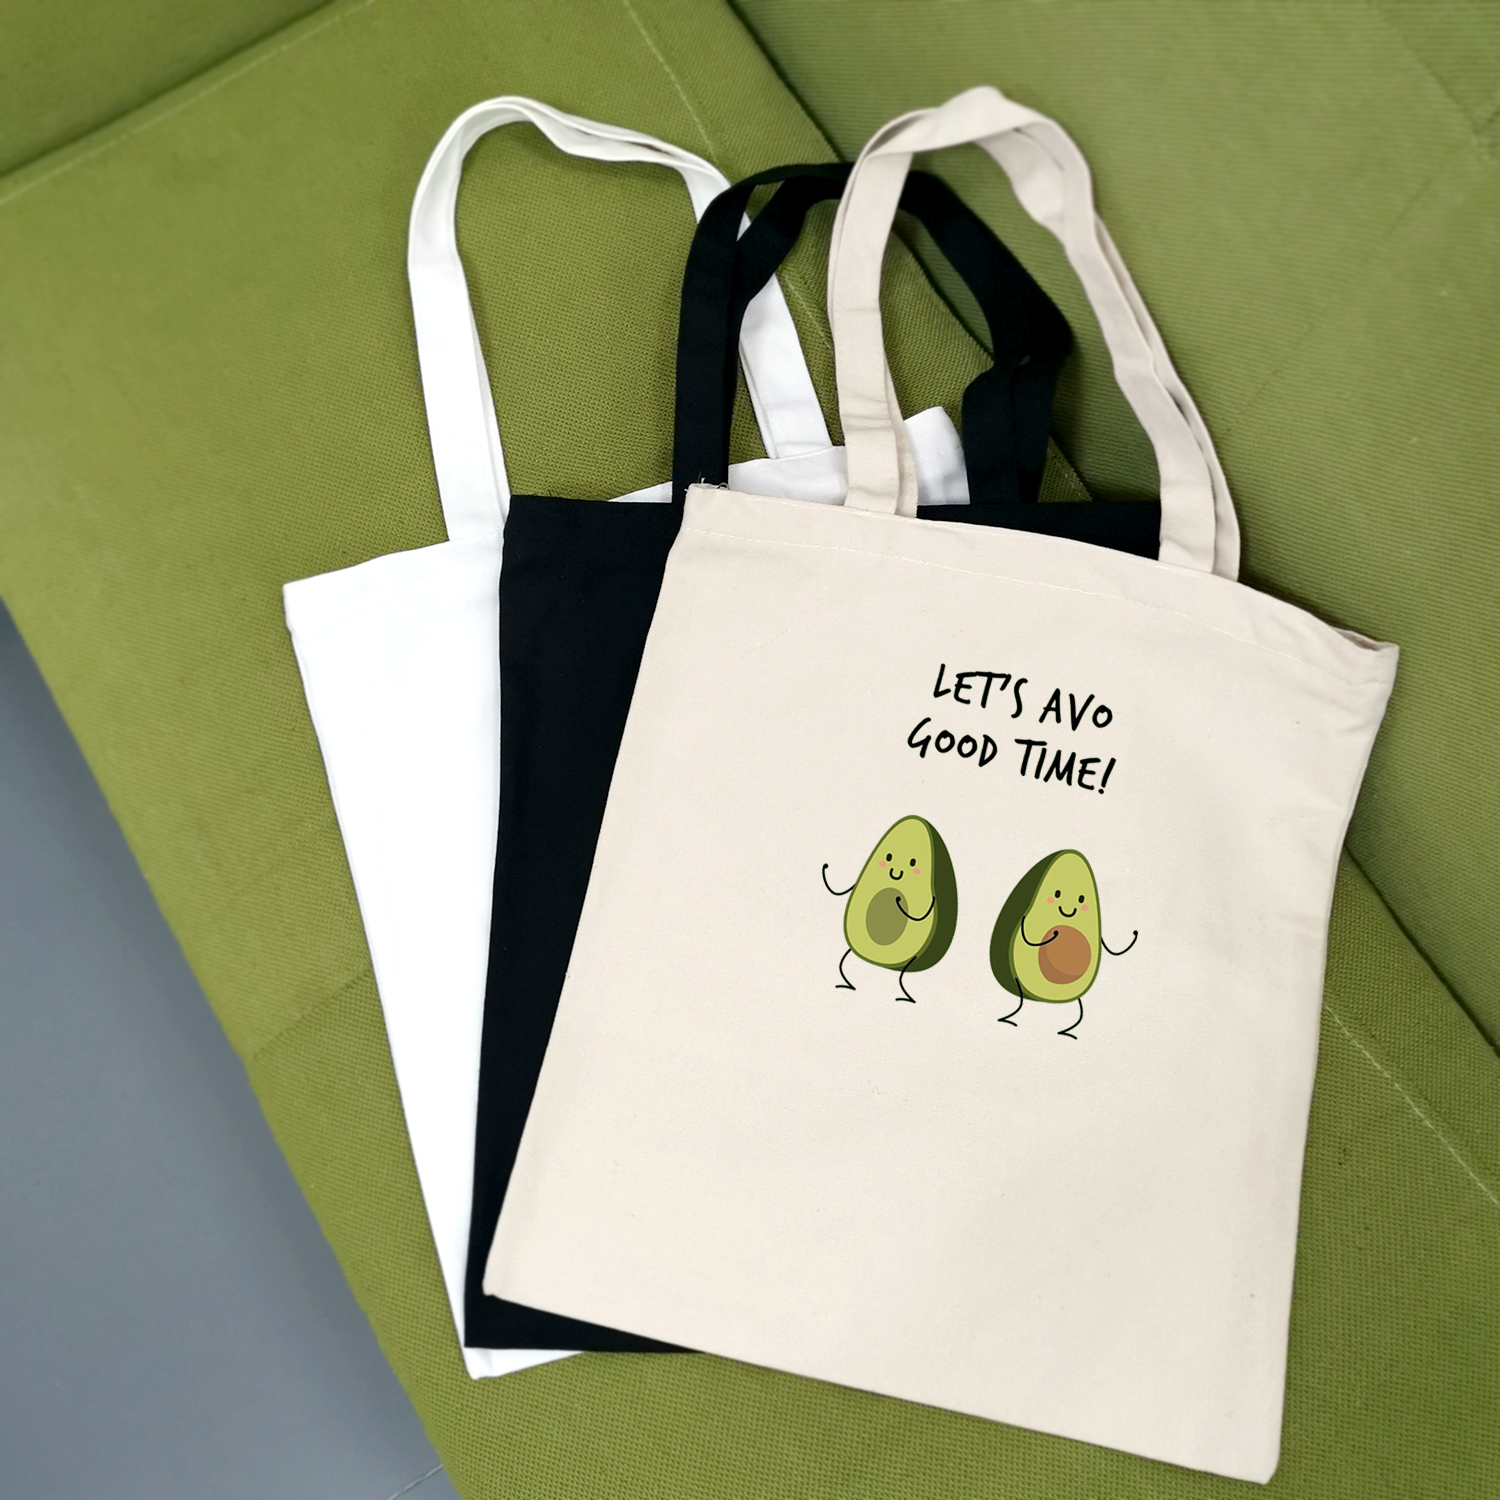 Cute Avocado Print Reusable Shopping Bag Women Canvas Tote Bags Printing  Eco Bag Cartoon Bolsa De Compras Shopper Shoulder Bags|Shopping Bags| -  AliExpress